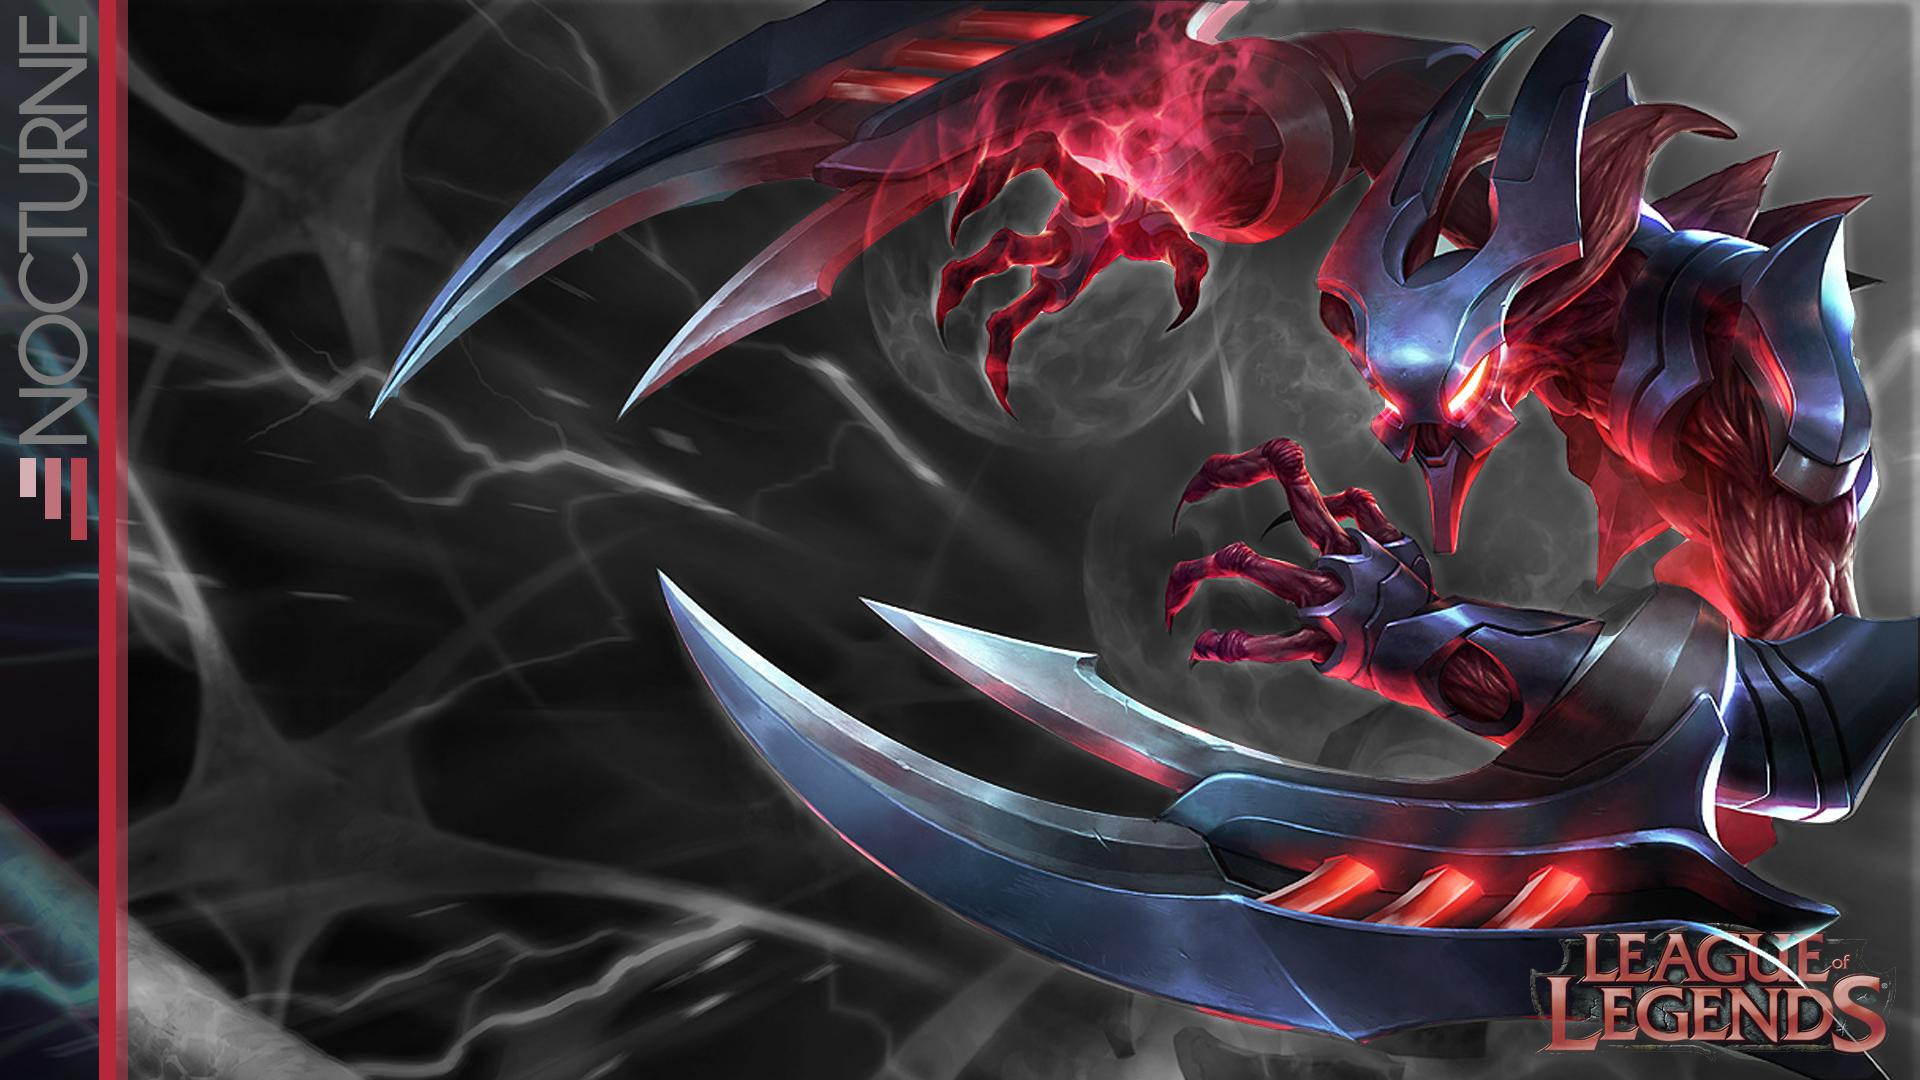 League of Legends Nocturne Wallpaper - WallpaperSafari